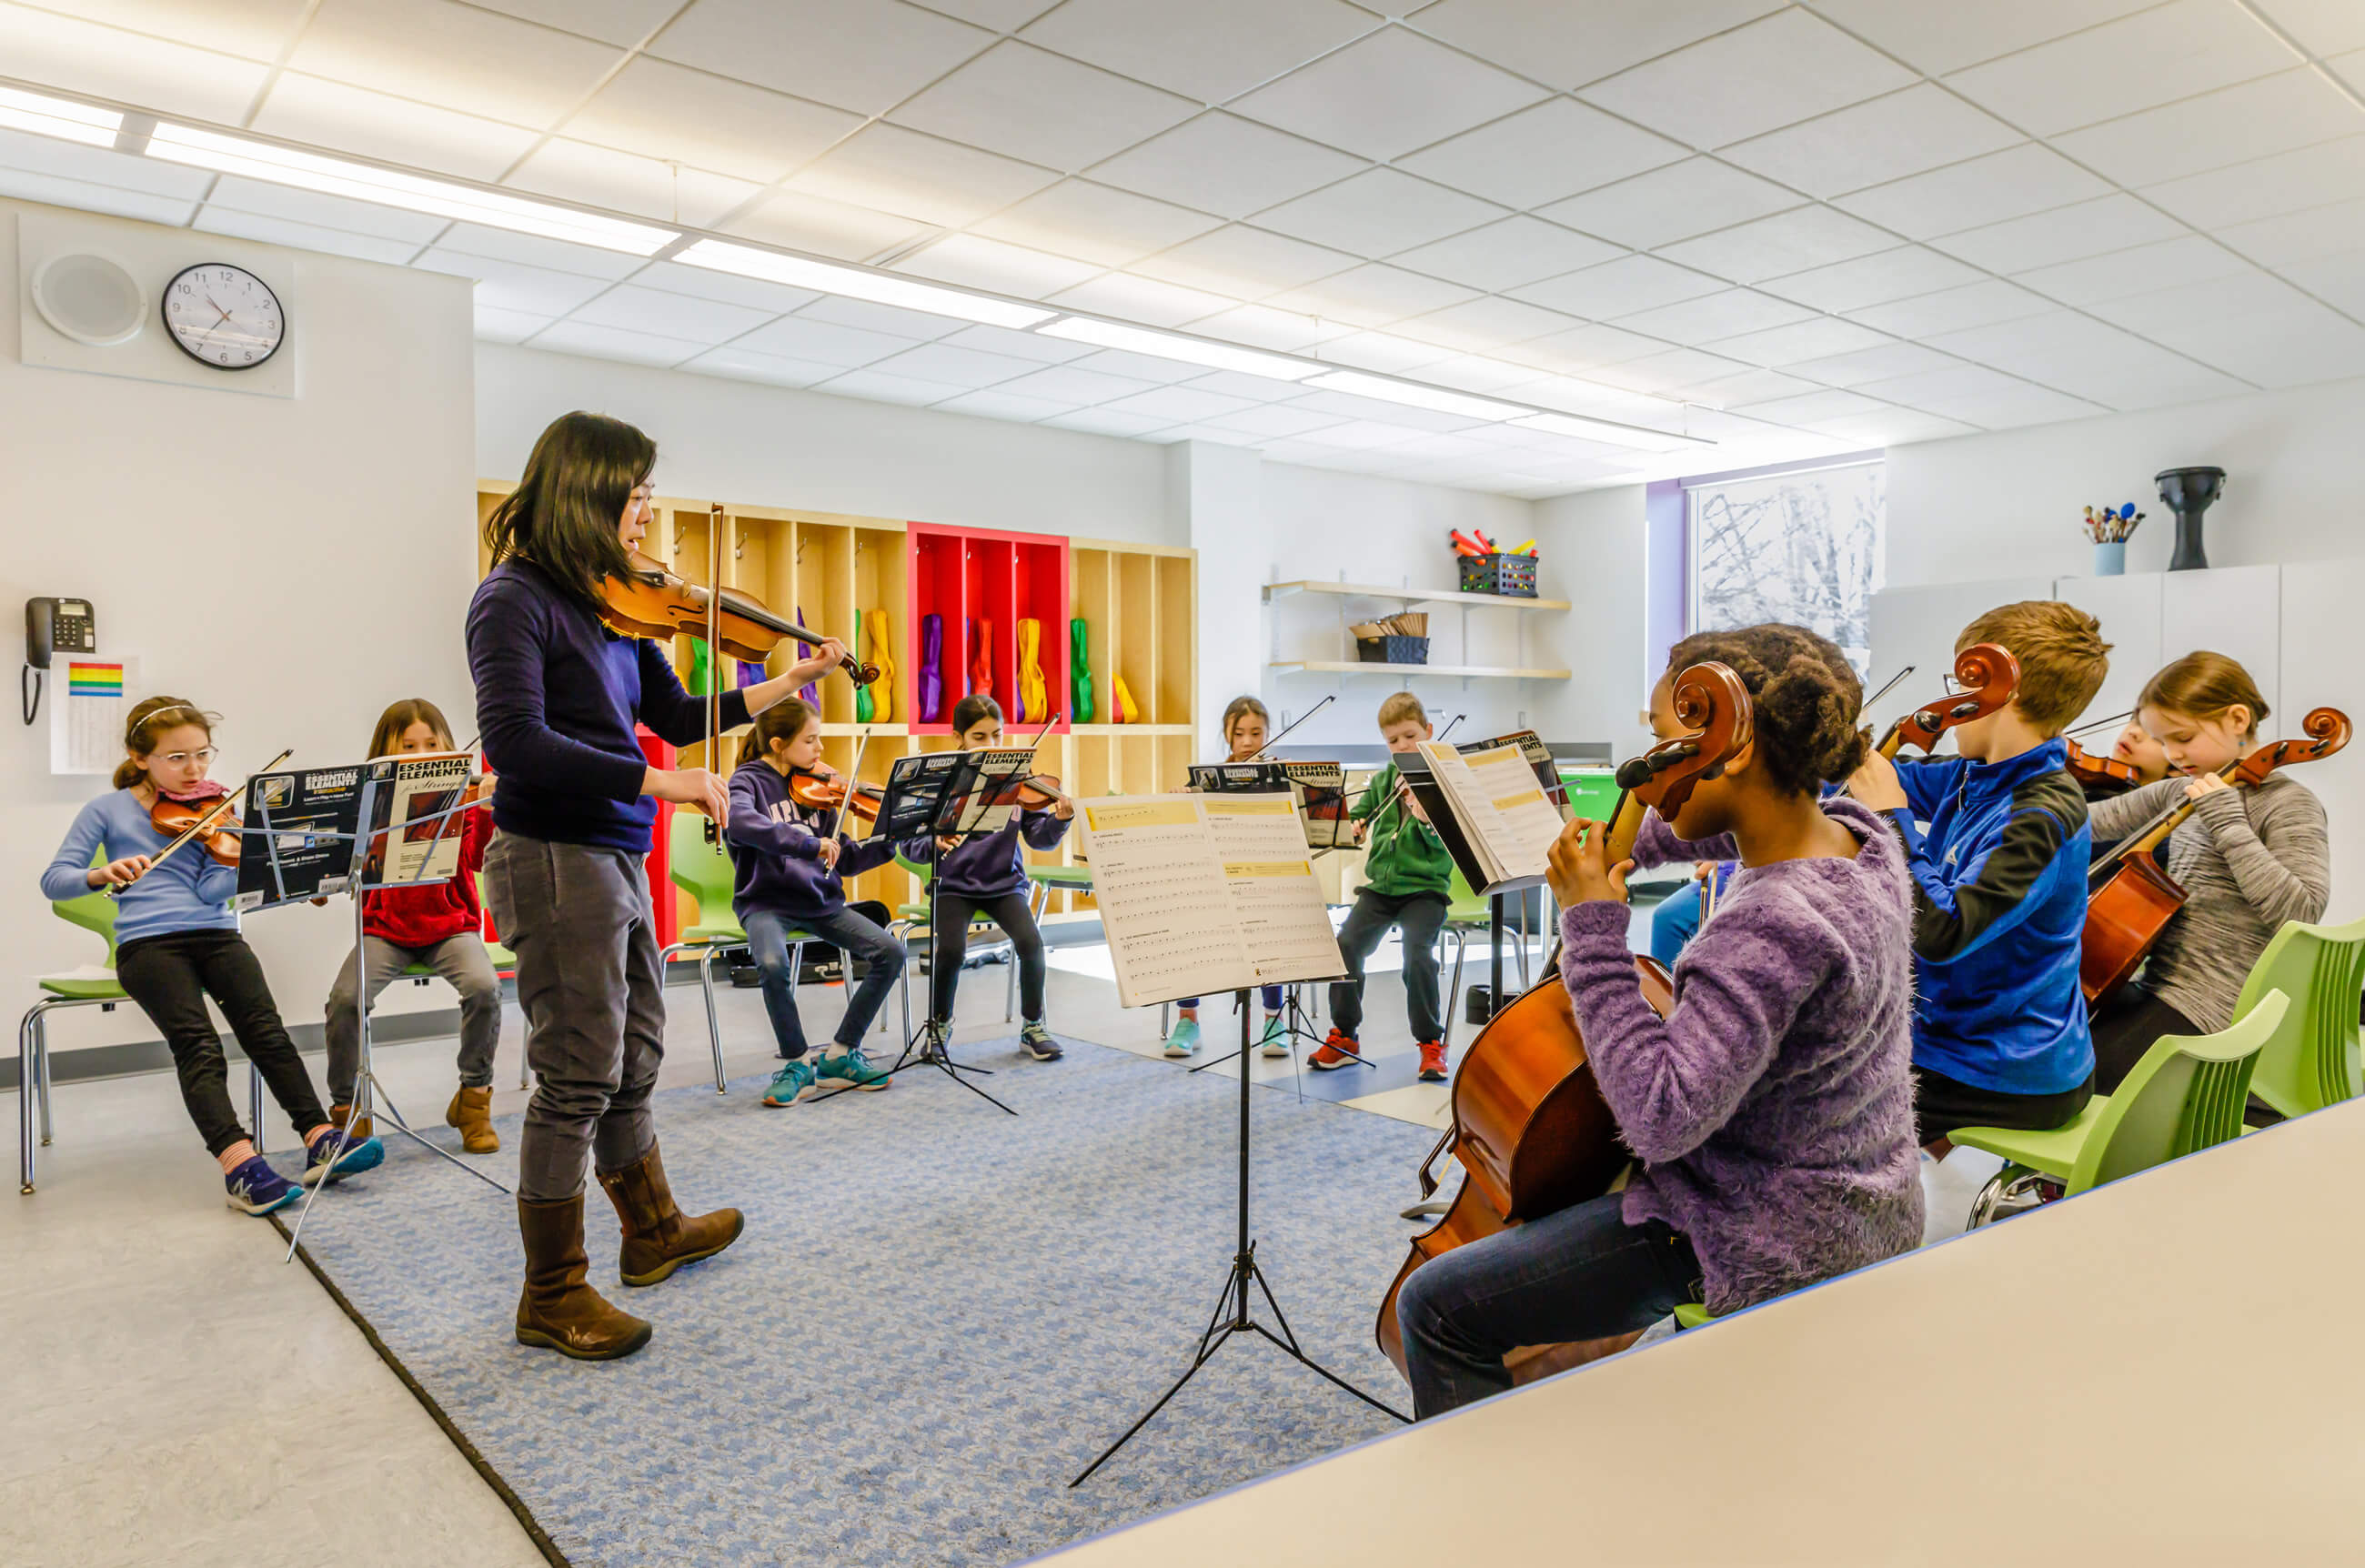 Teacher standing in front of students teaching violin or viola in front of colorful yellow and red cubbies.